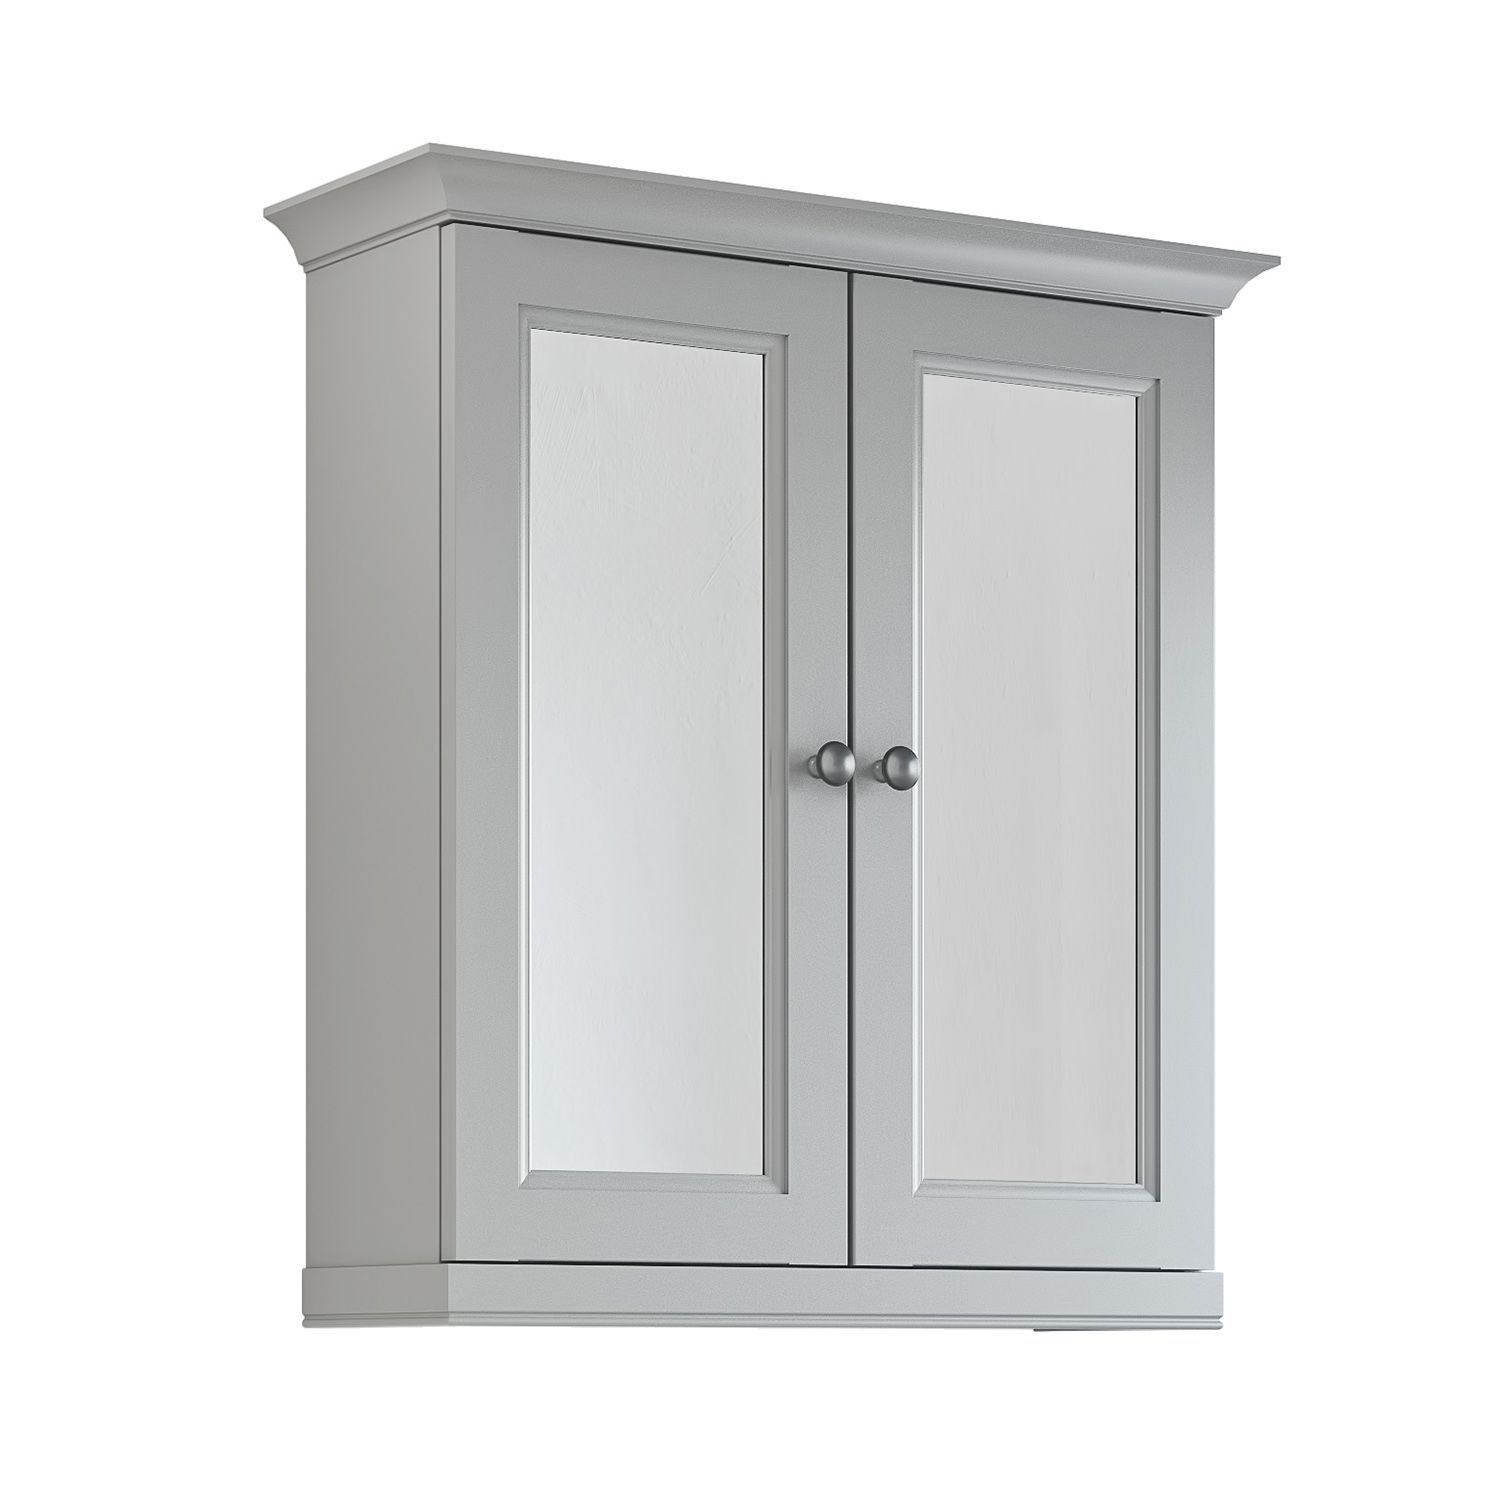 Bathroom Cabinets B Q cooke & lewis chadleigh double door light grey matt mirror cabinet